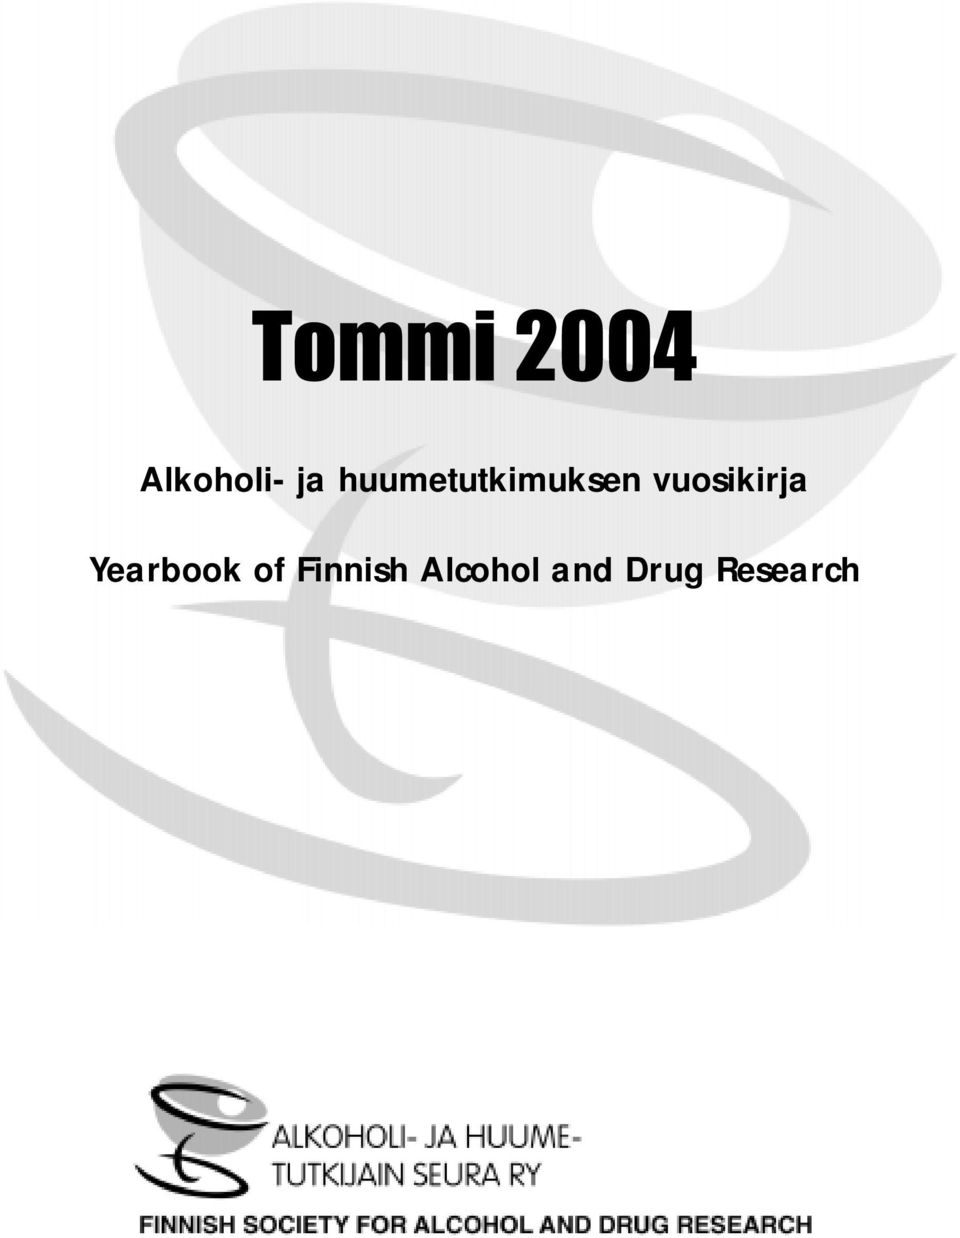 vuosikirja Yearbook of